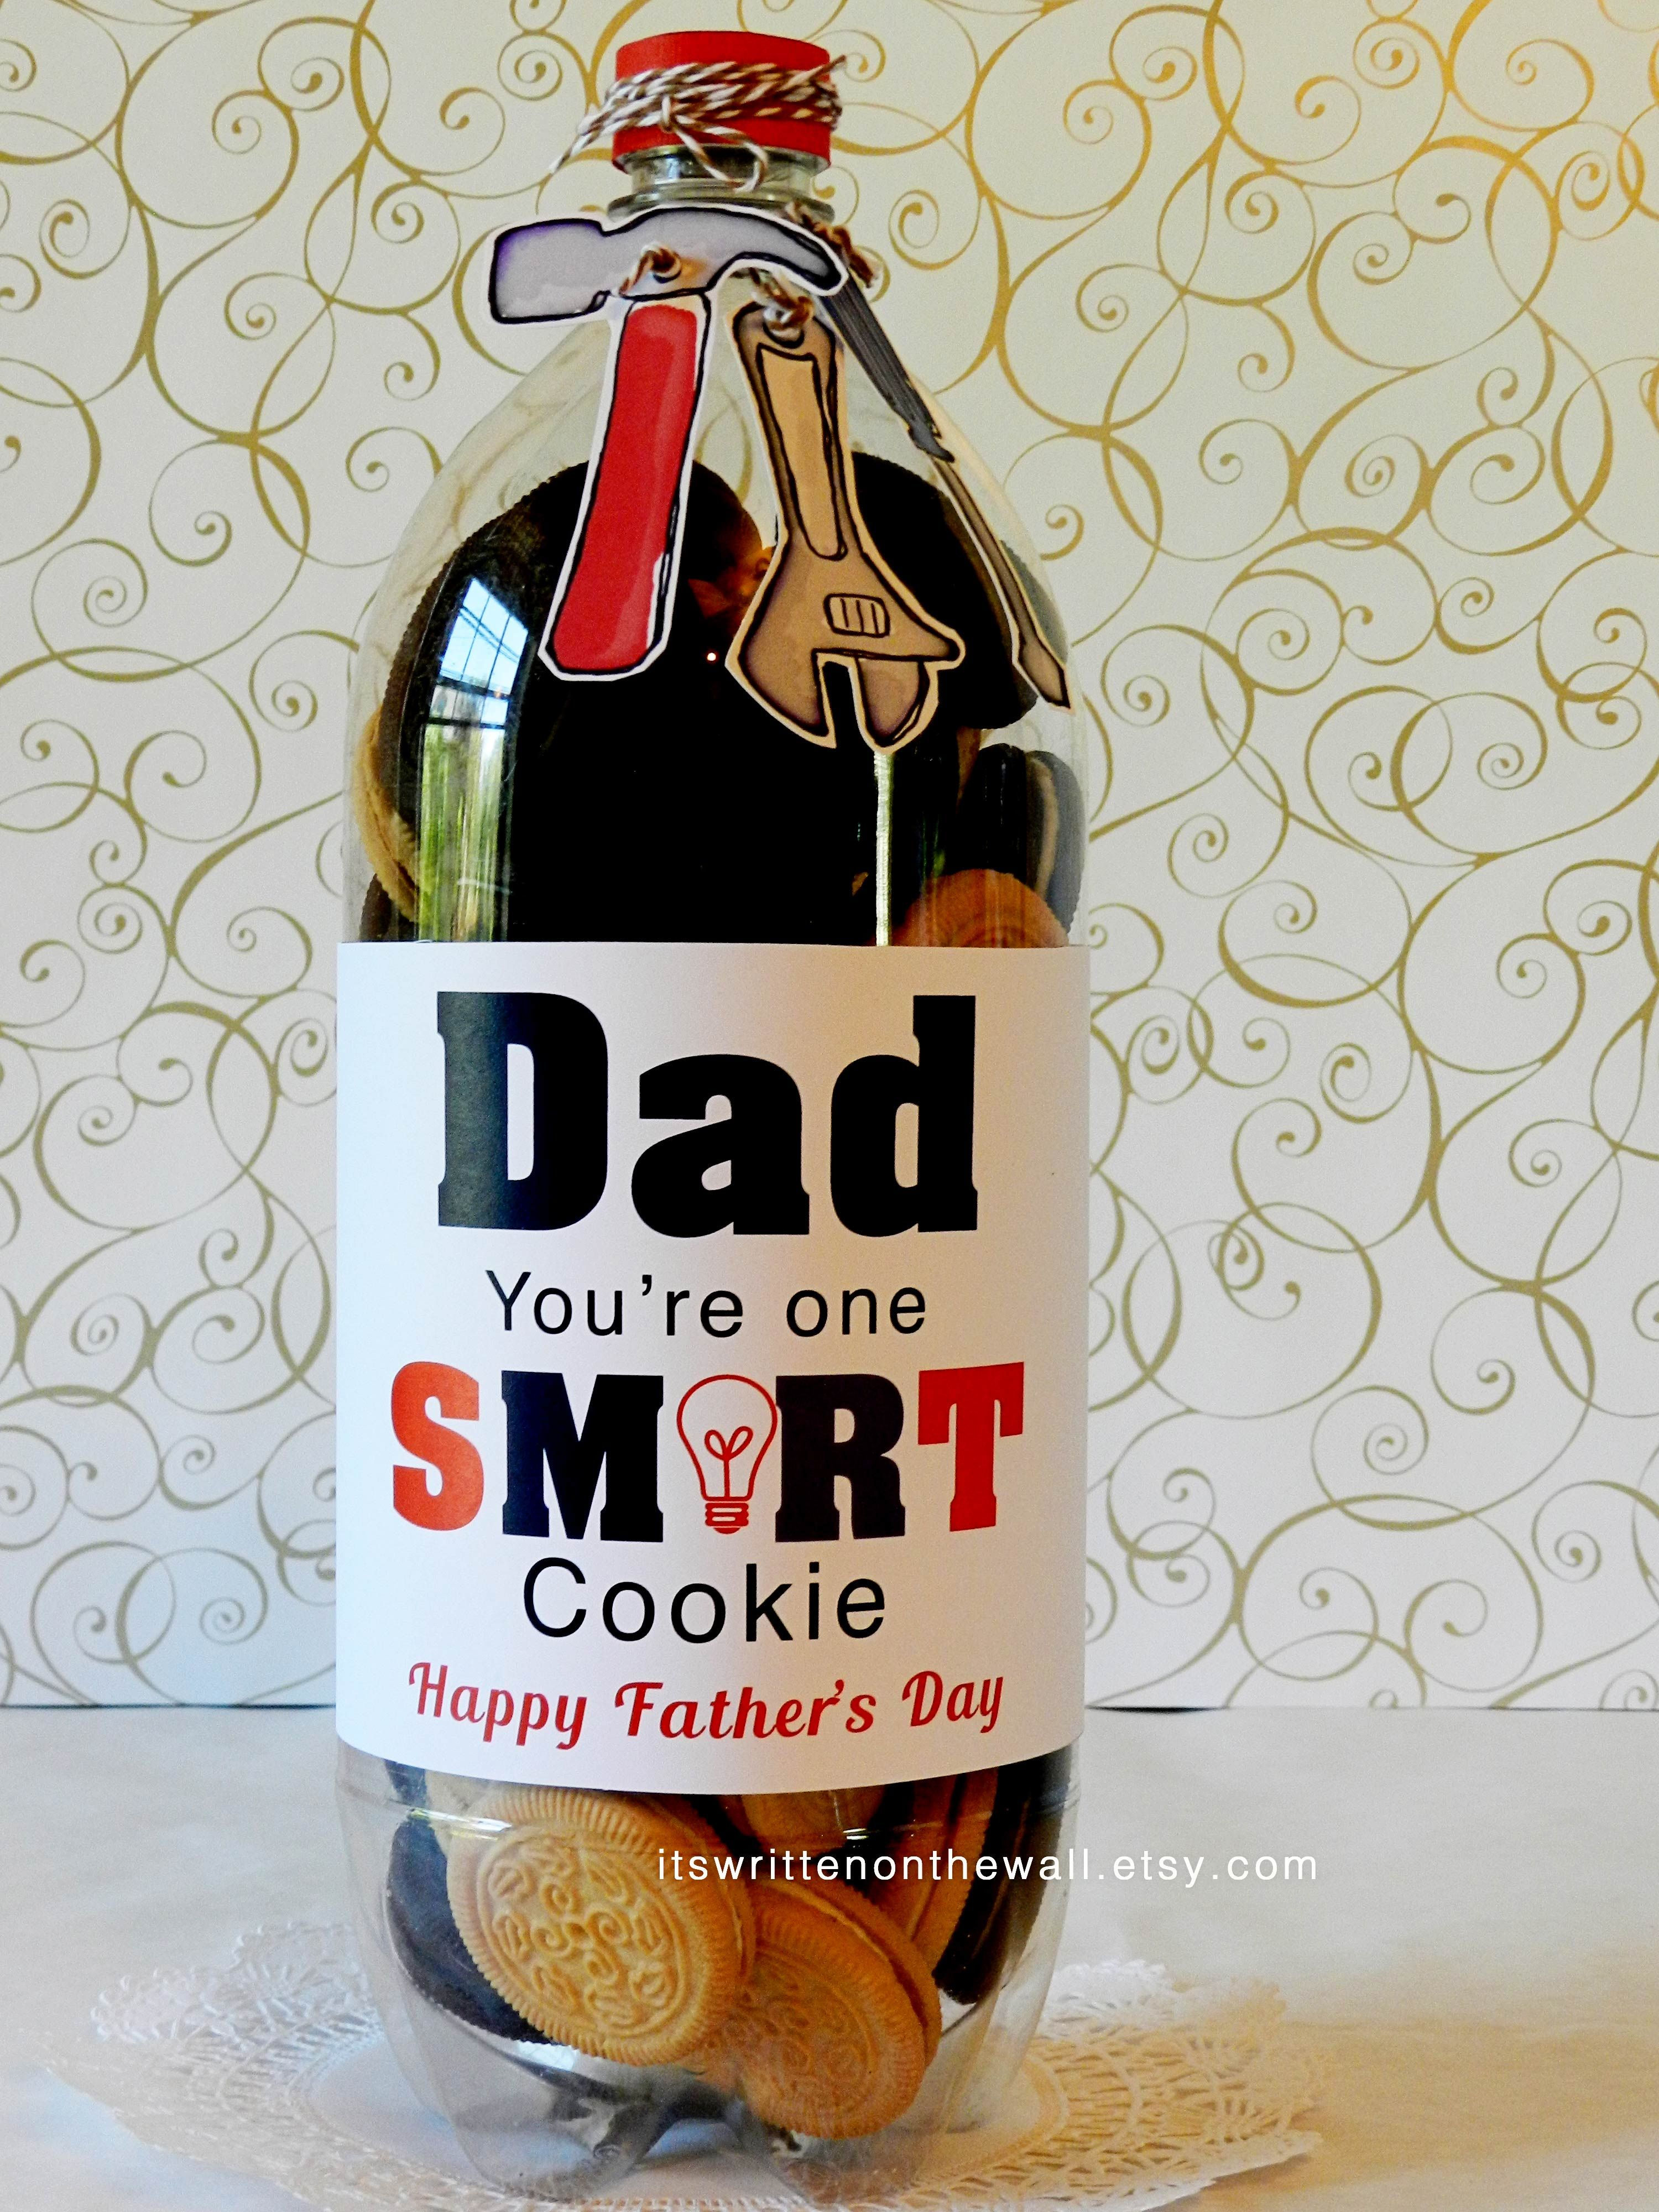 Fathers Day Gift Ideas Cookies For Dad, Label, Tag Dads